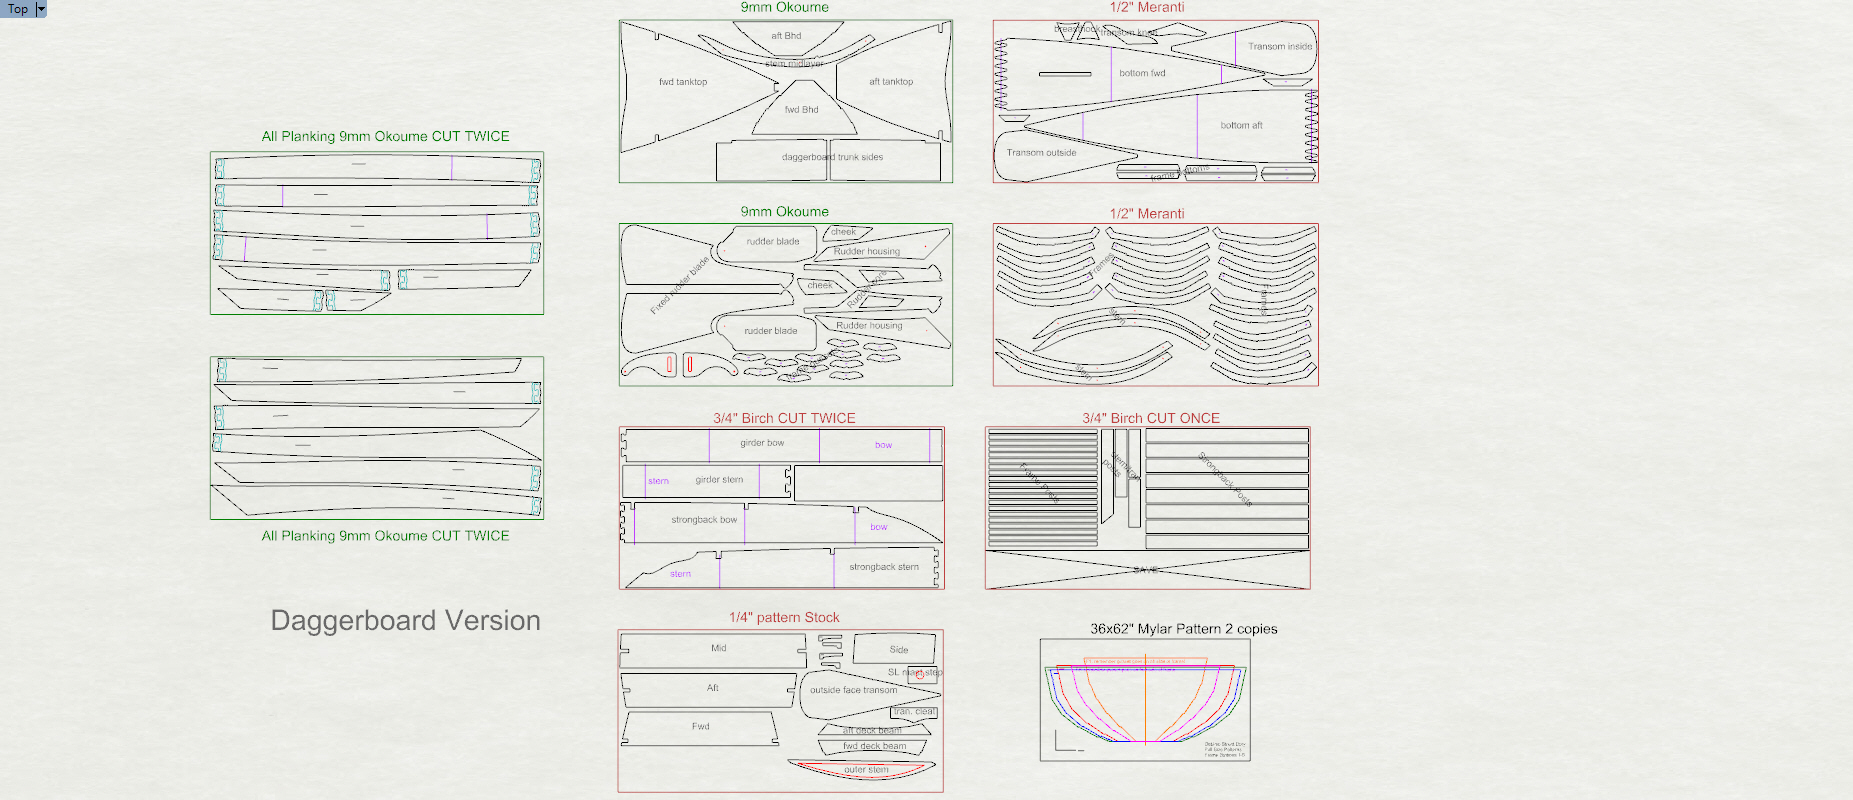 DSD sheet layout for the plywood kit (daggerboard version)